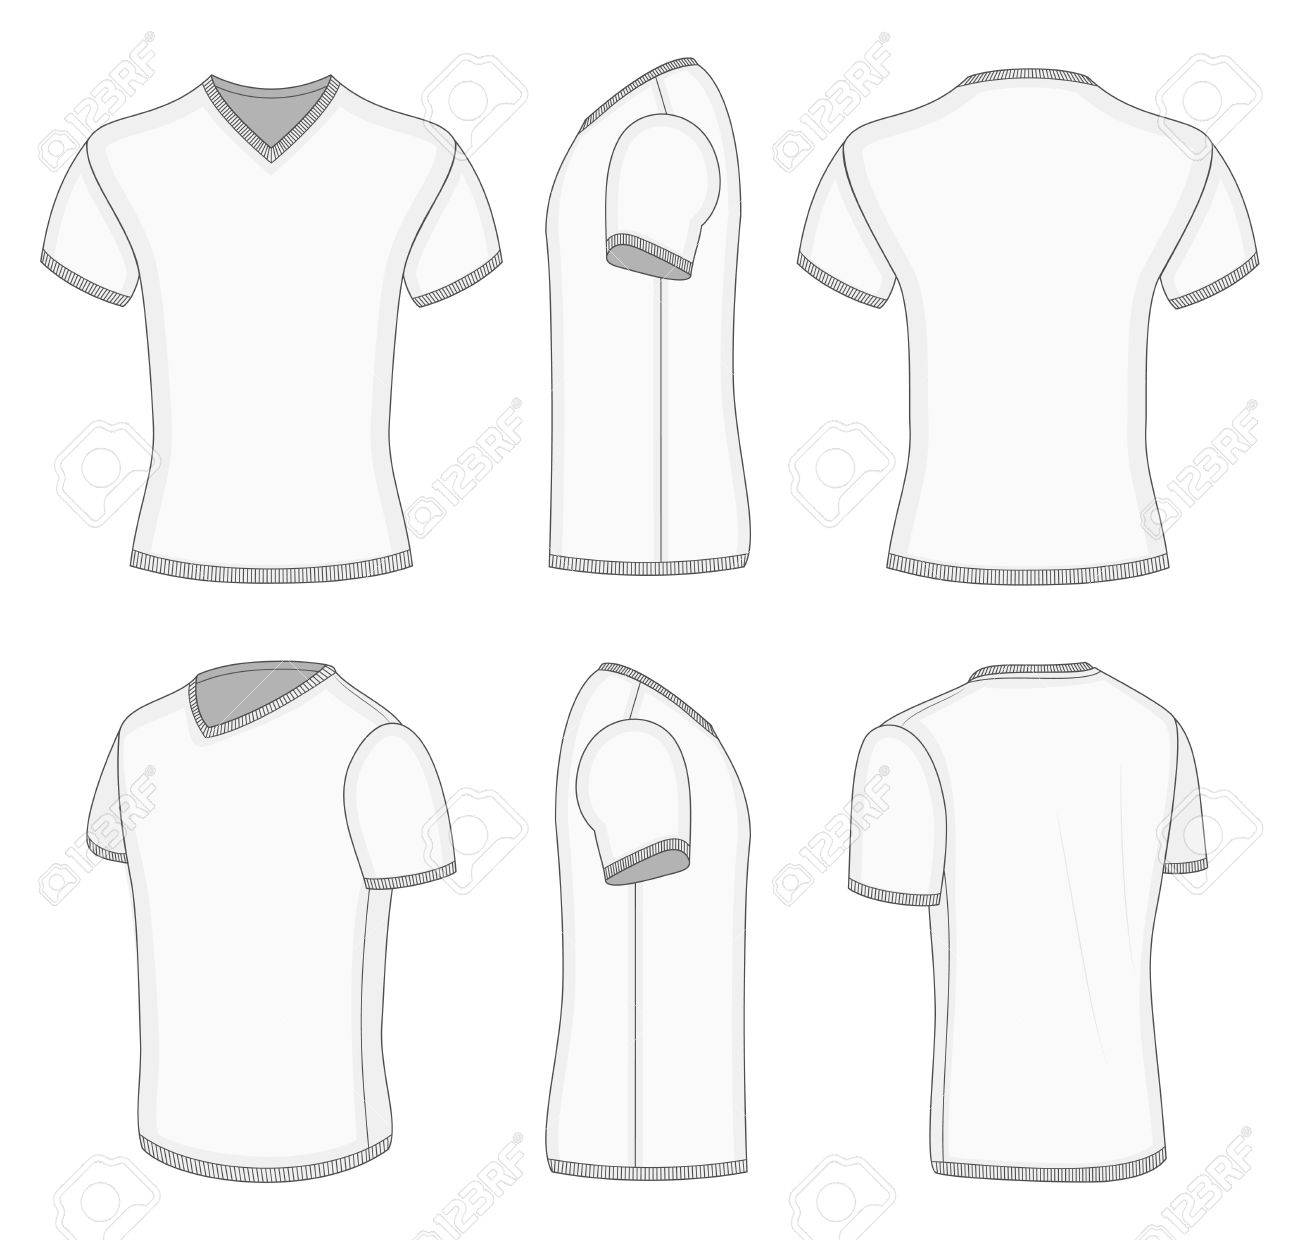 All Views Men\'s White Short Sleeve T-shirt V-neck Design Templates ...